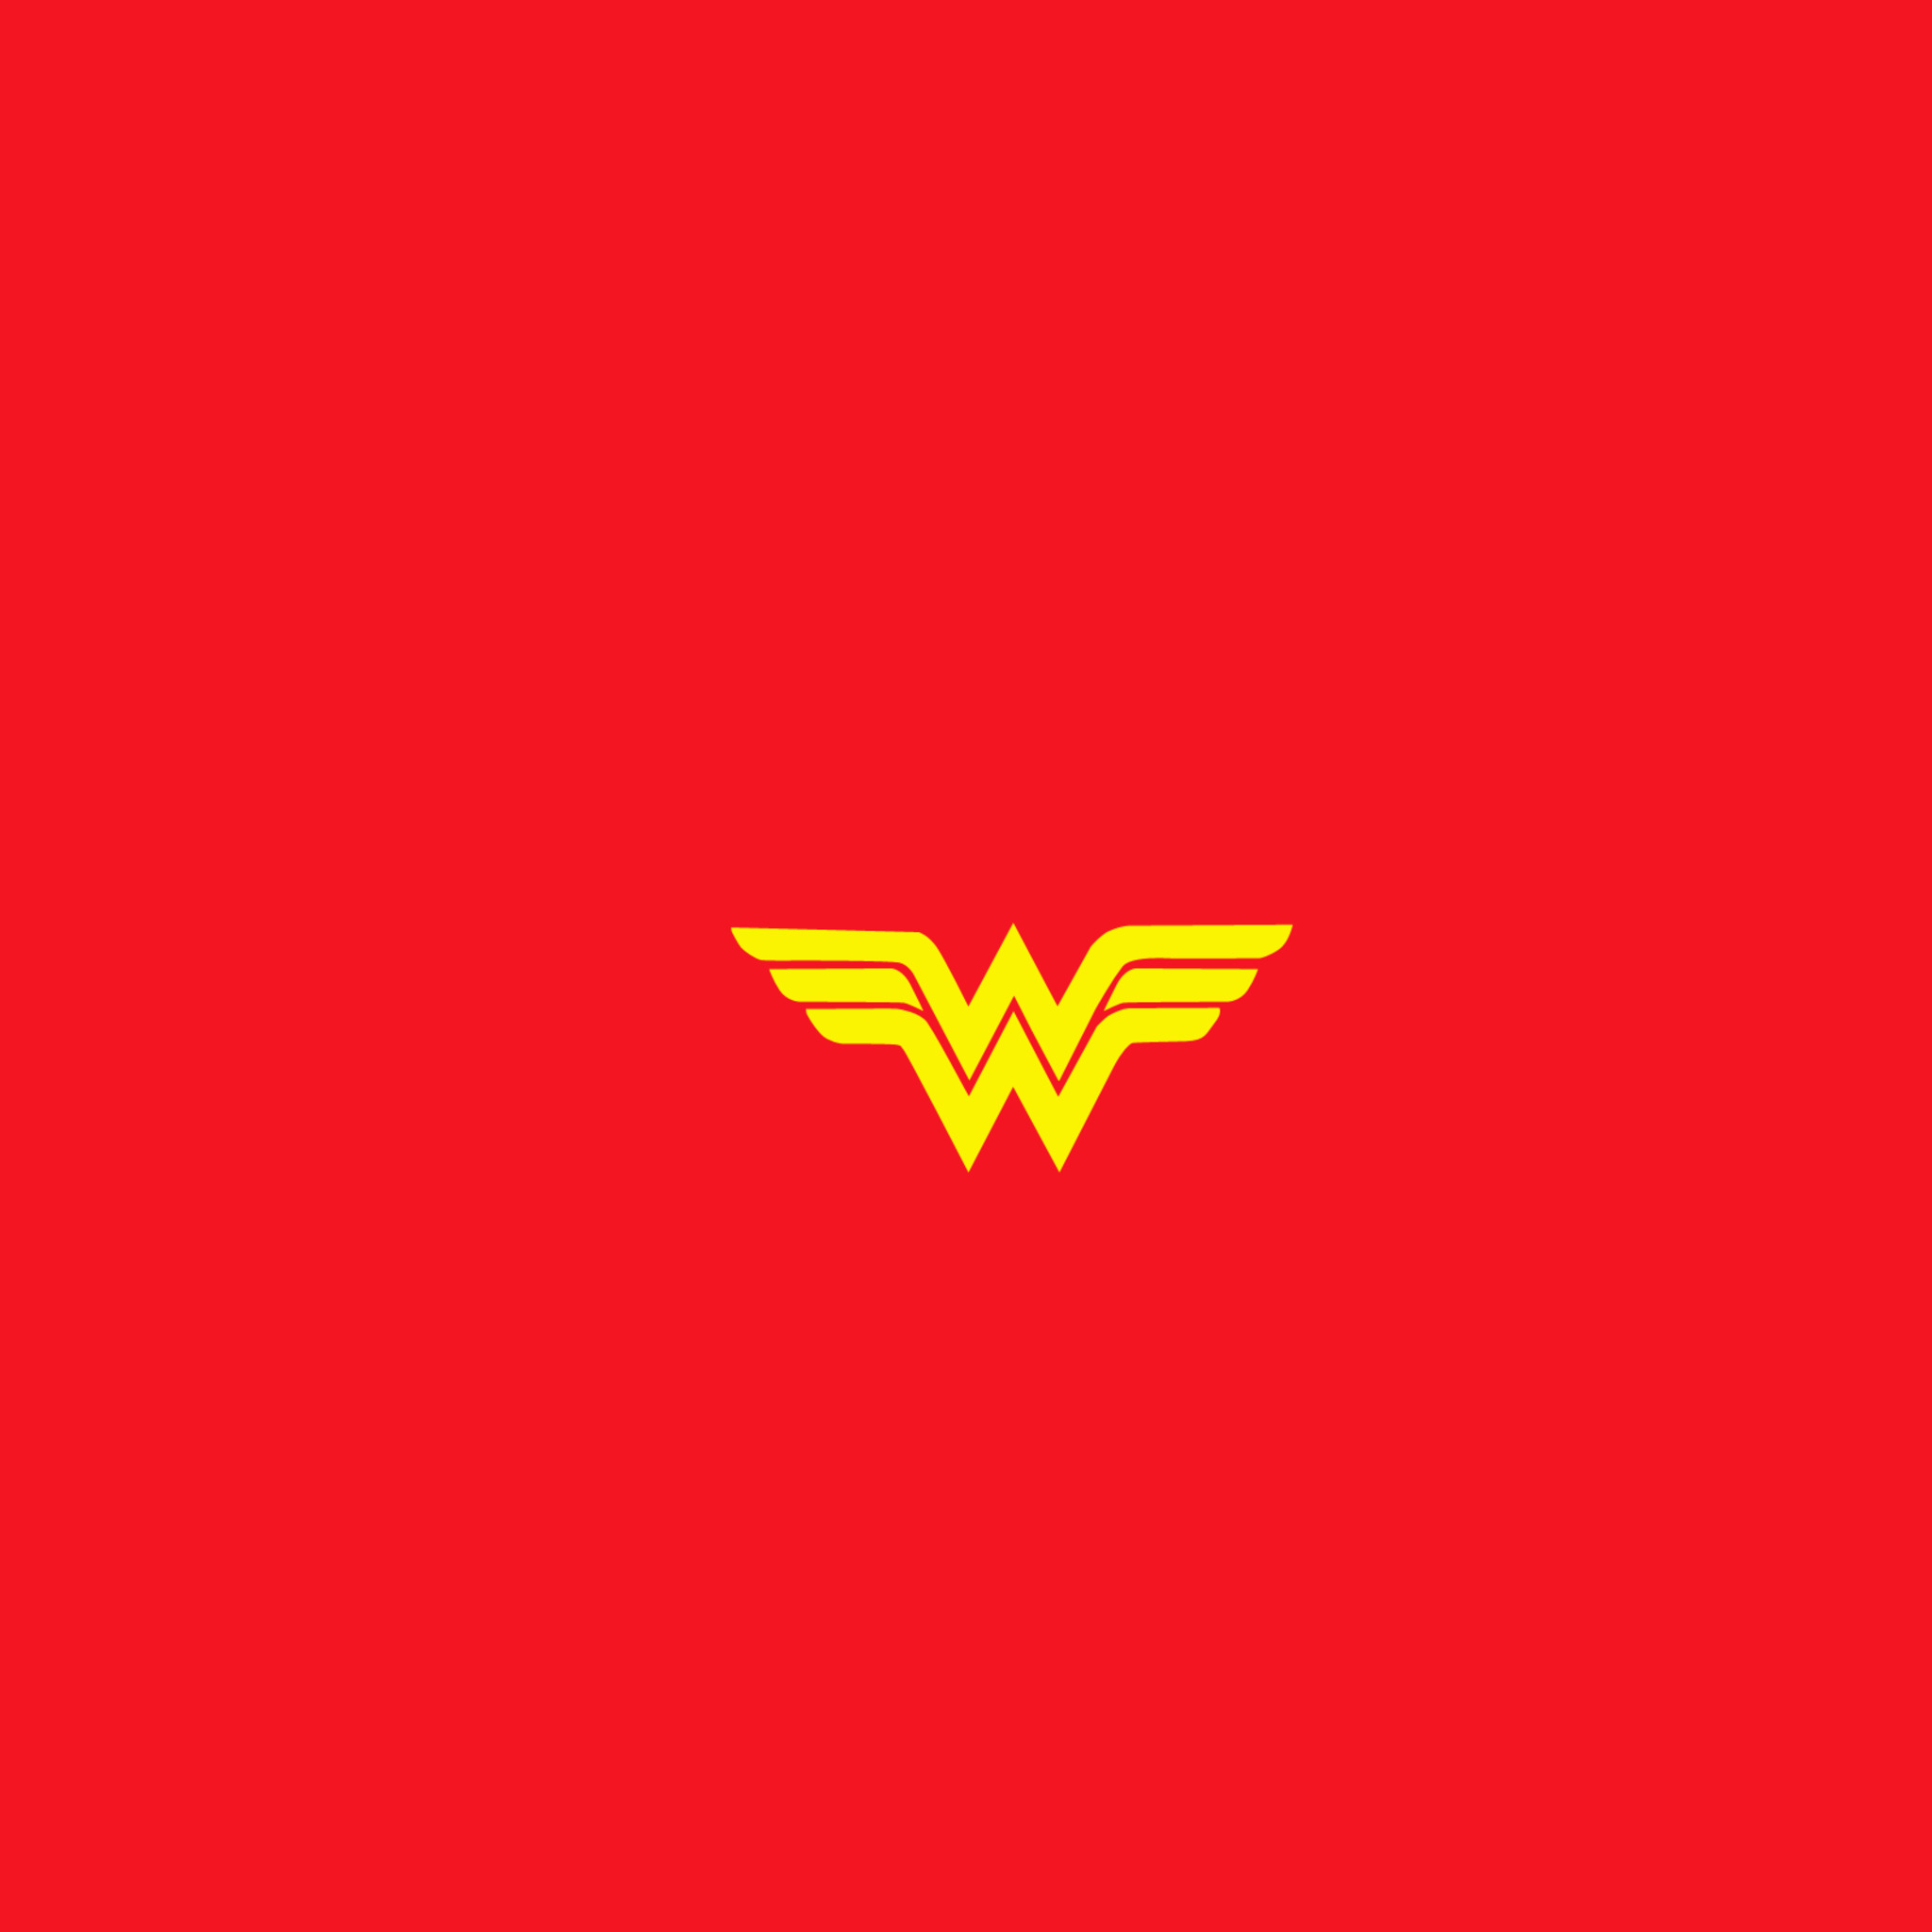 2048x2048 Wonder Woman Logo Ipad Air HD 4k Wallpapers